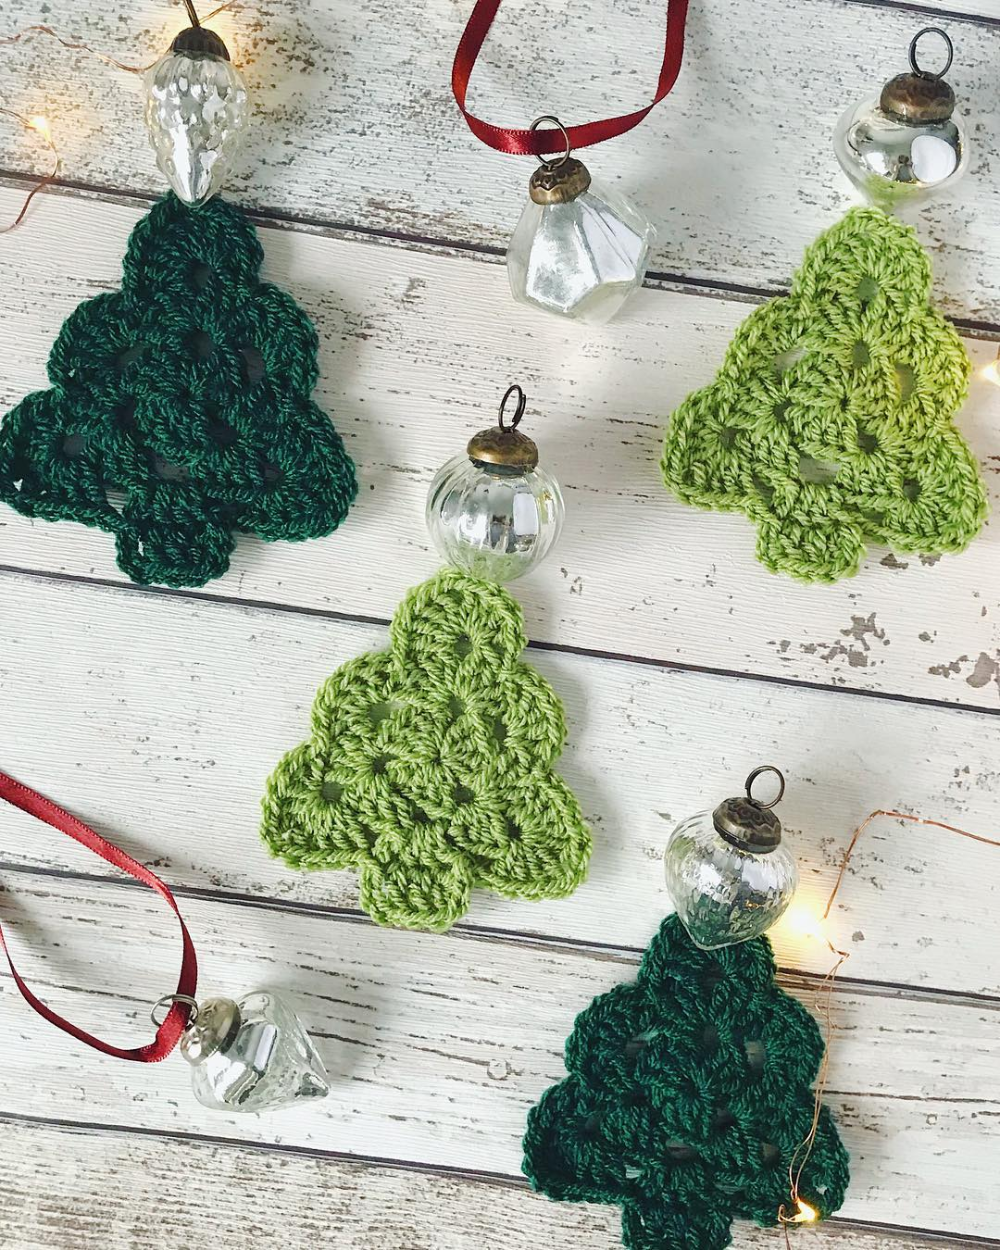 Most Beautiful Christmas Crochet Patterns With You New Year 2019  Page 62 of 63  apronbasket com